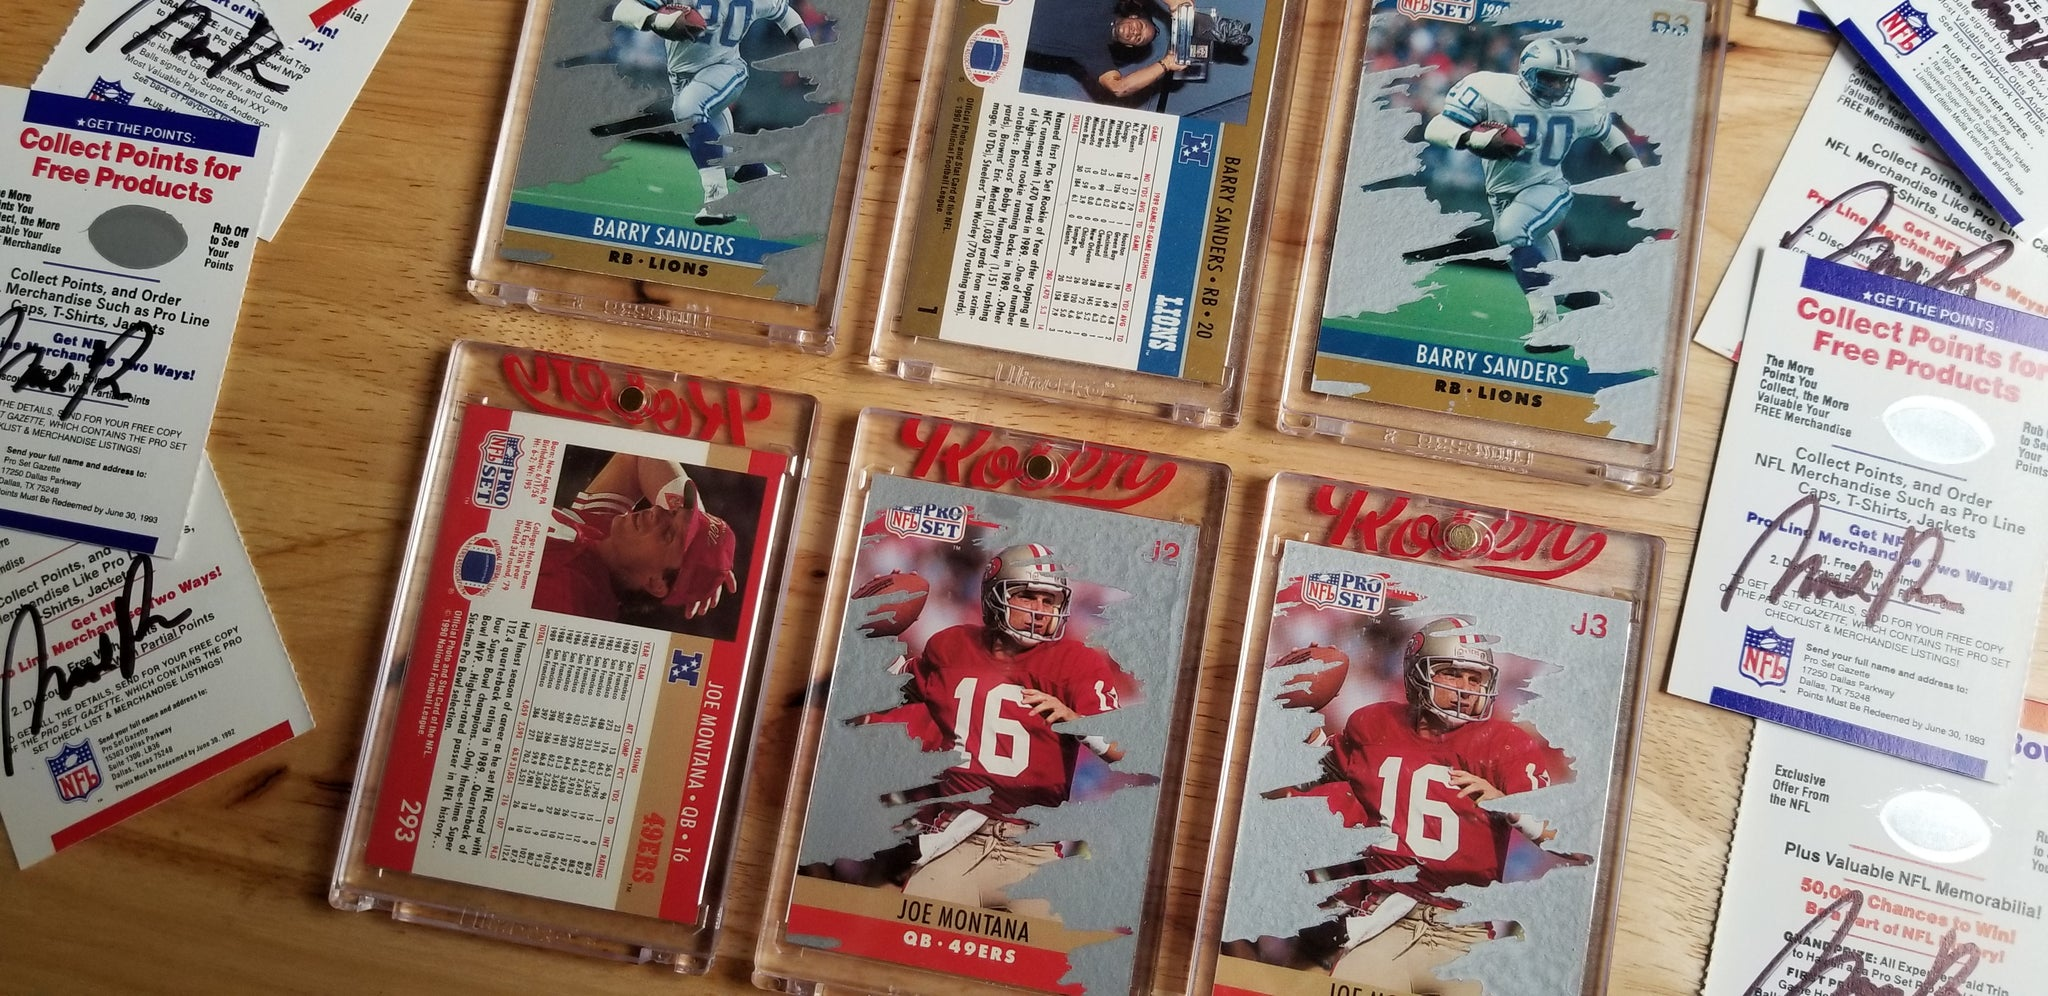 Baseball card art by Matthew Rosen - Pro Set NFL Scratch-Offs